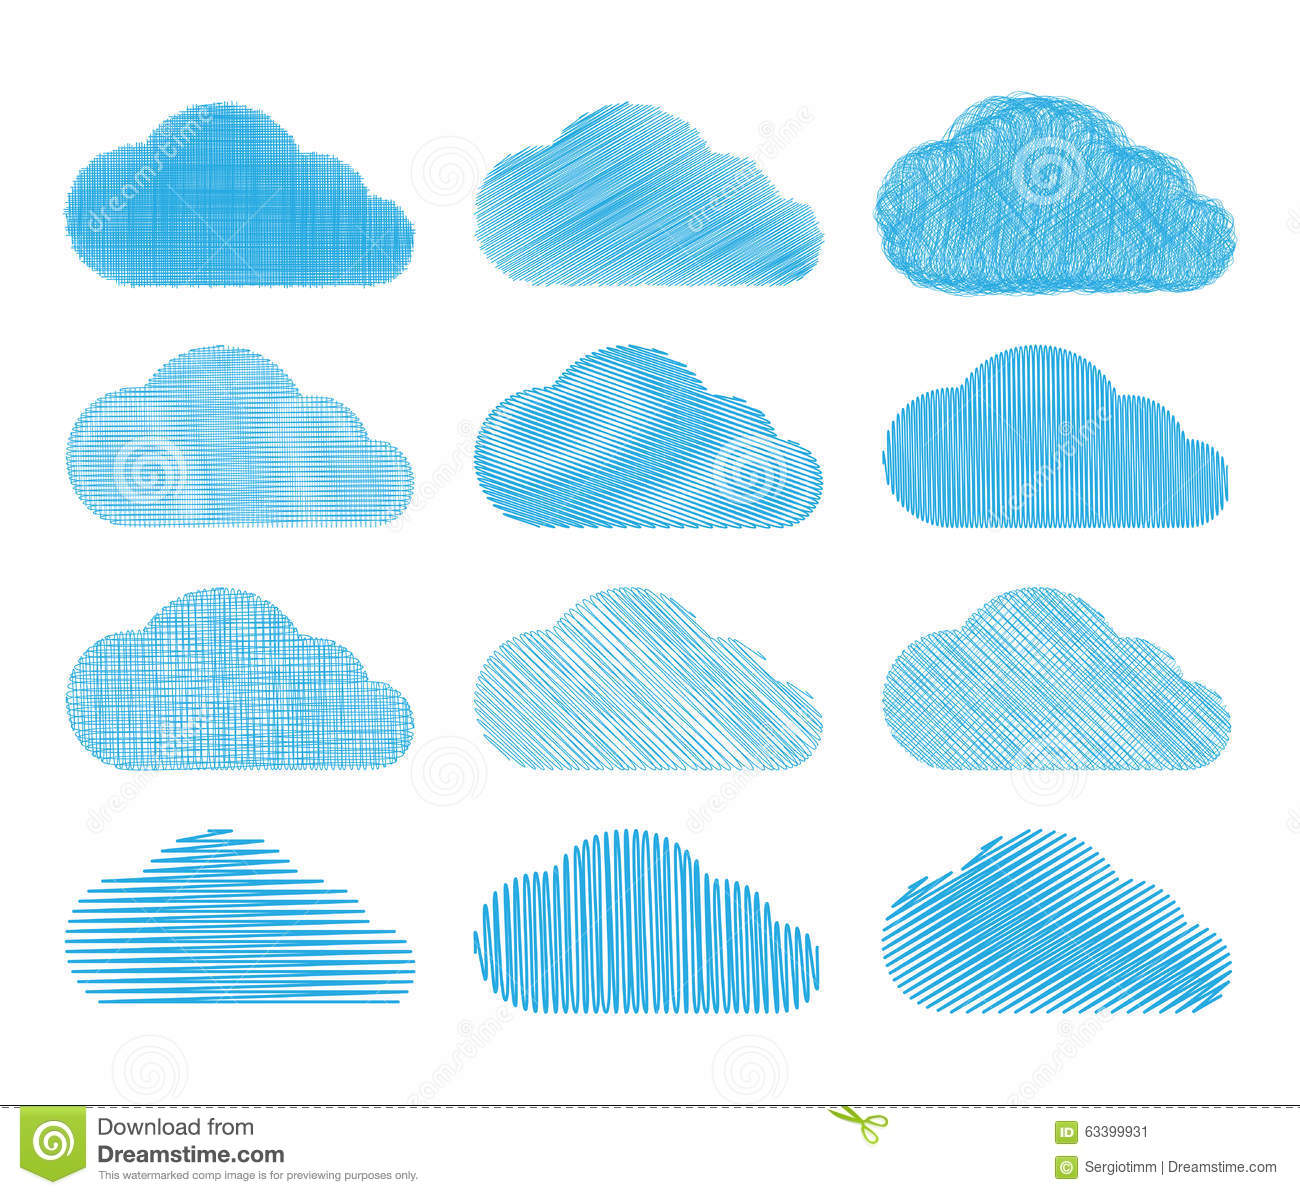 Set Of Vector Clouds With Different Types Of Pencil Shading. Stock.